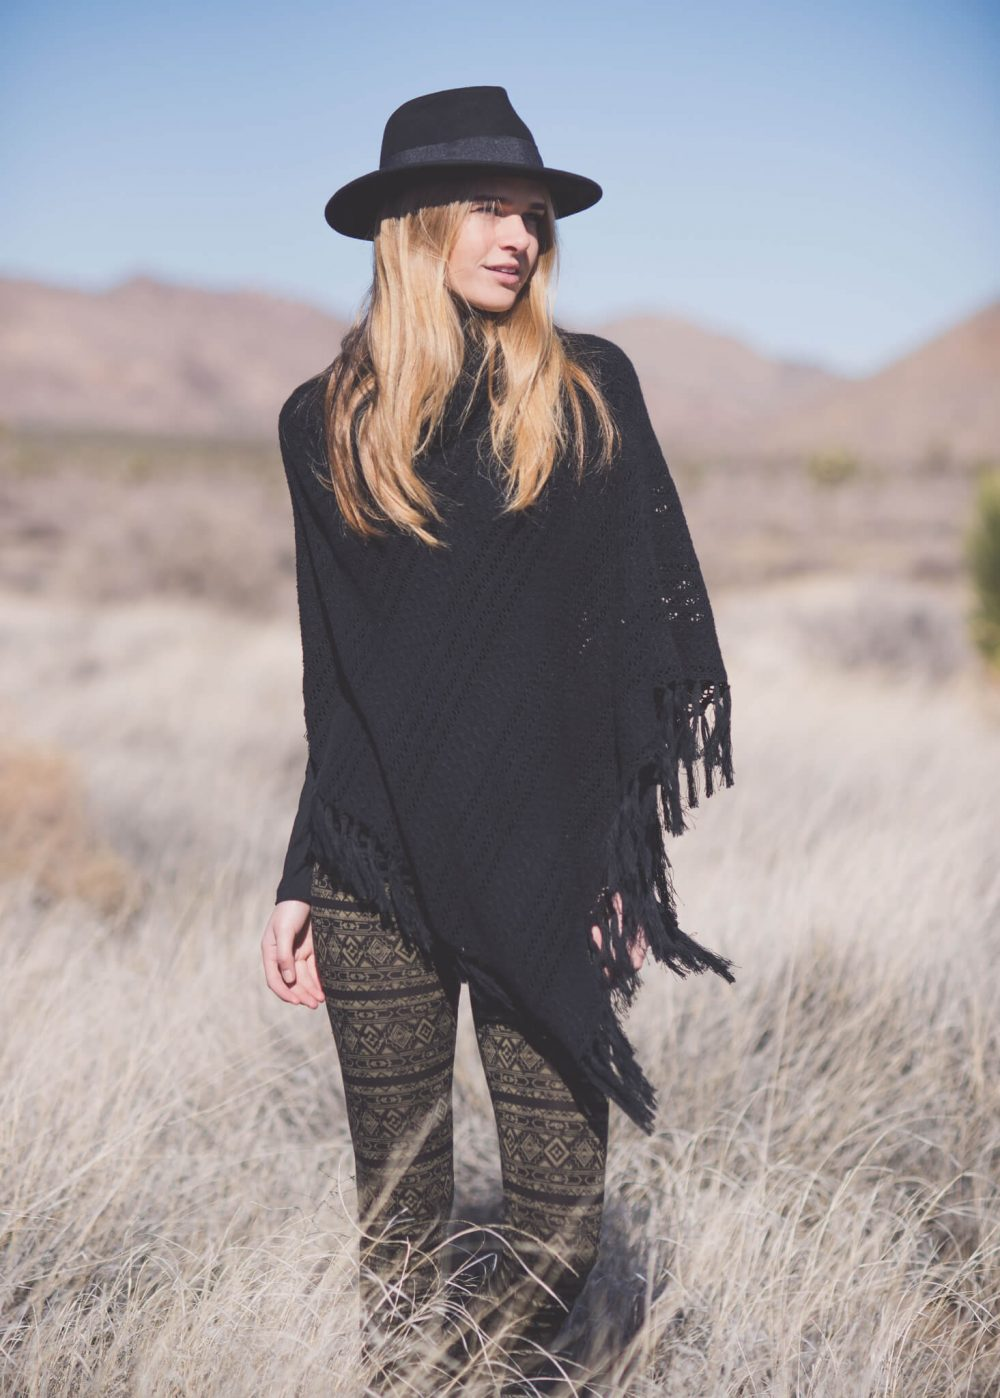 Equinox Poncho in Hemp by Nomads Hemp Wear